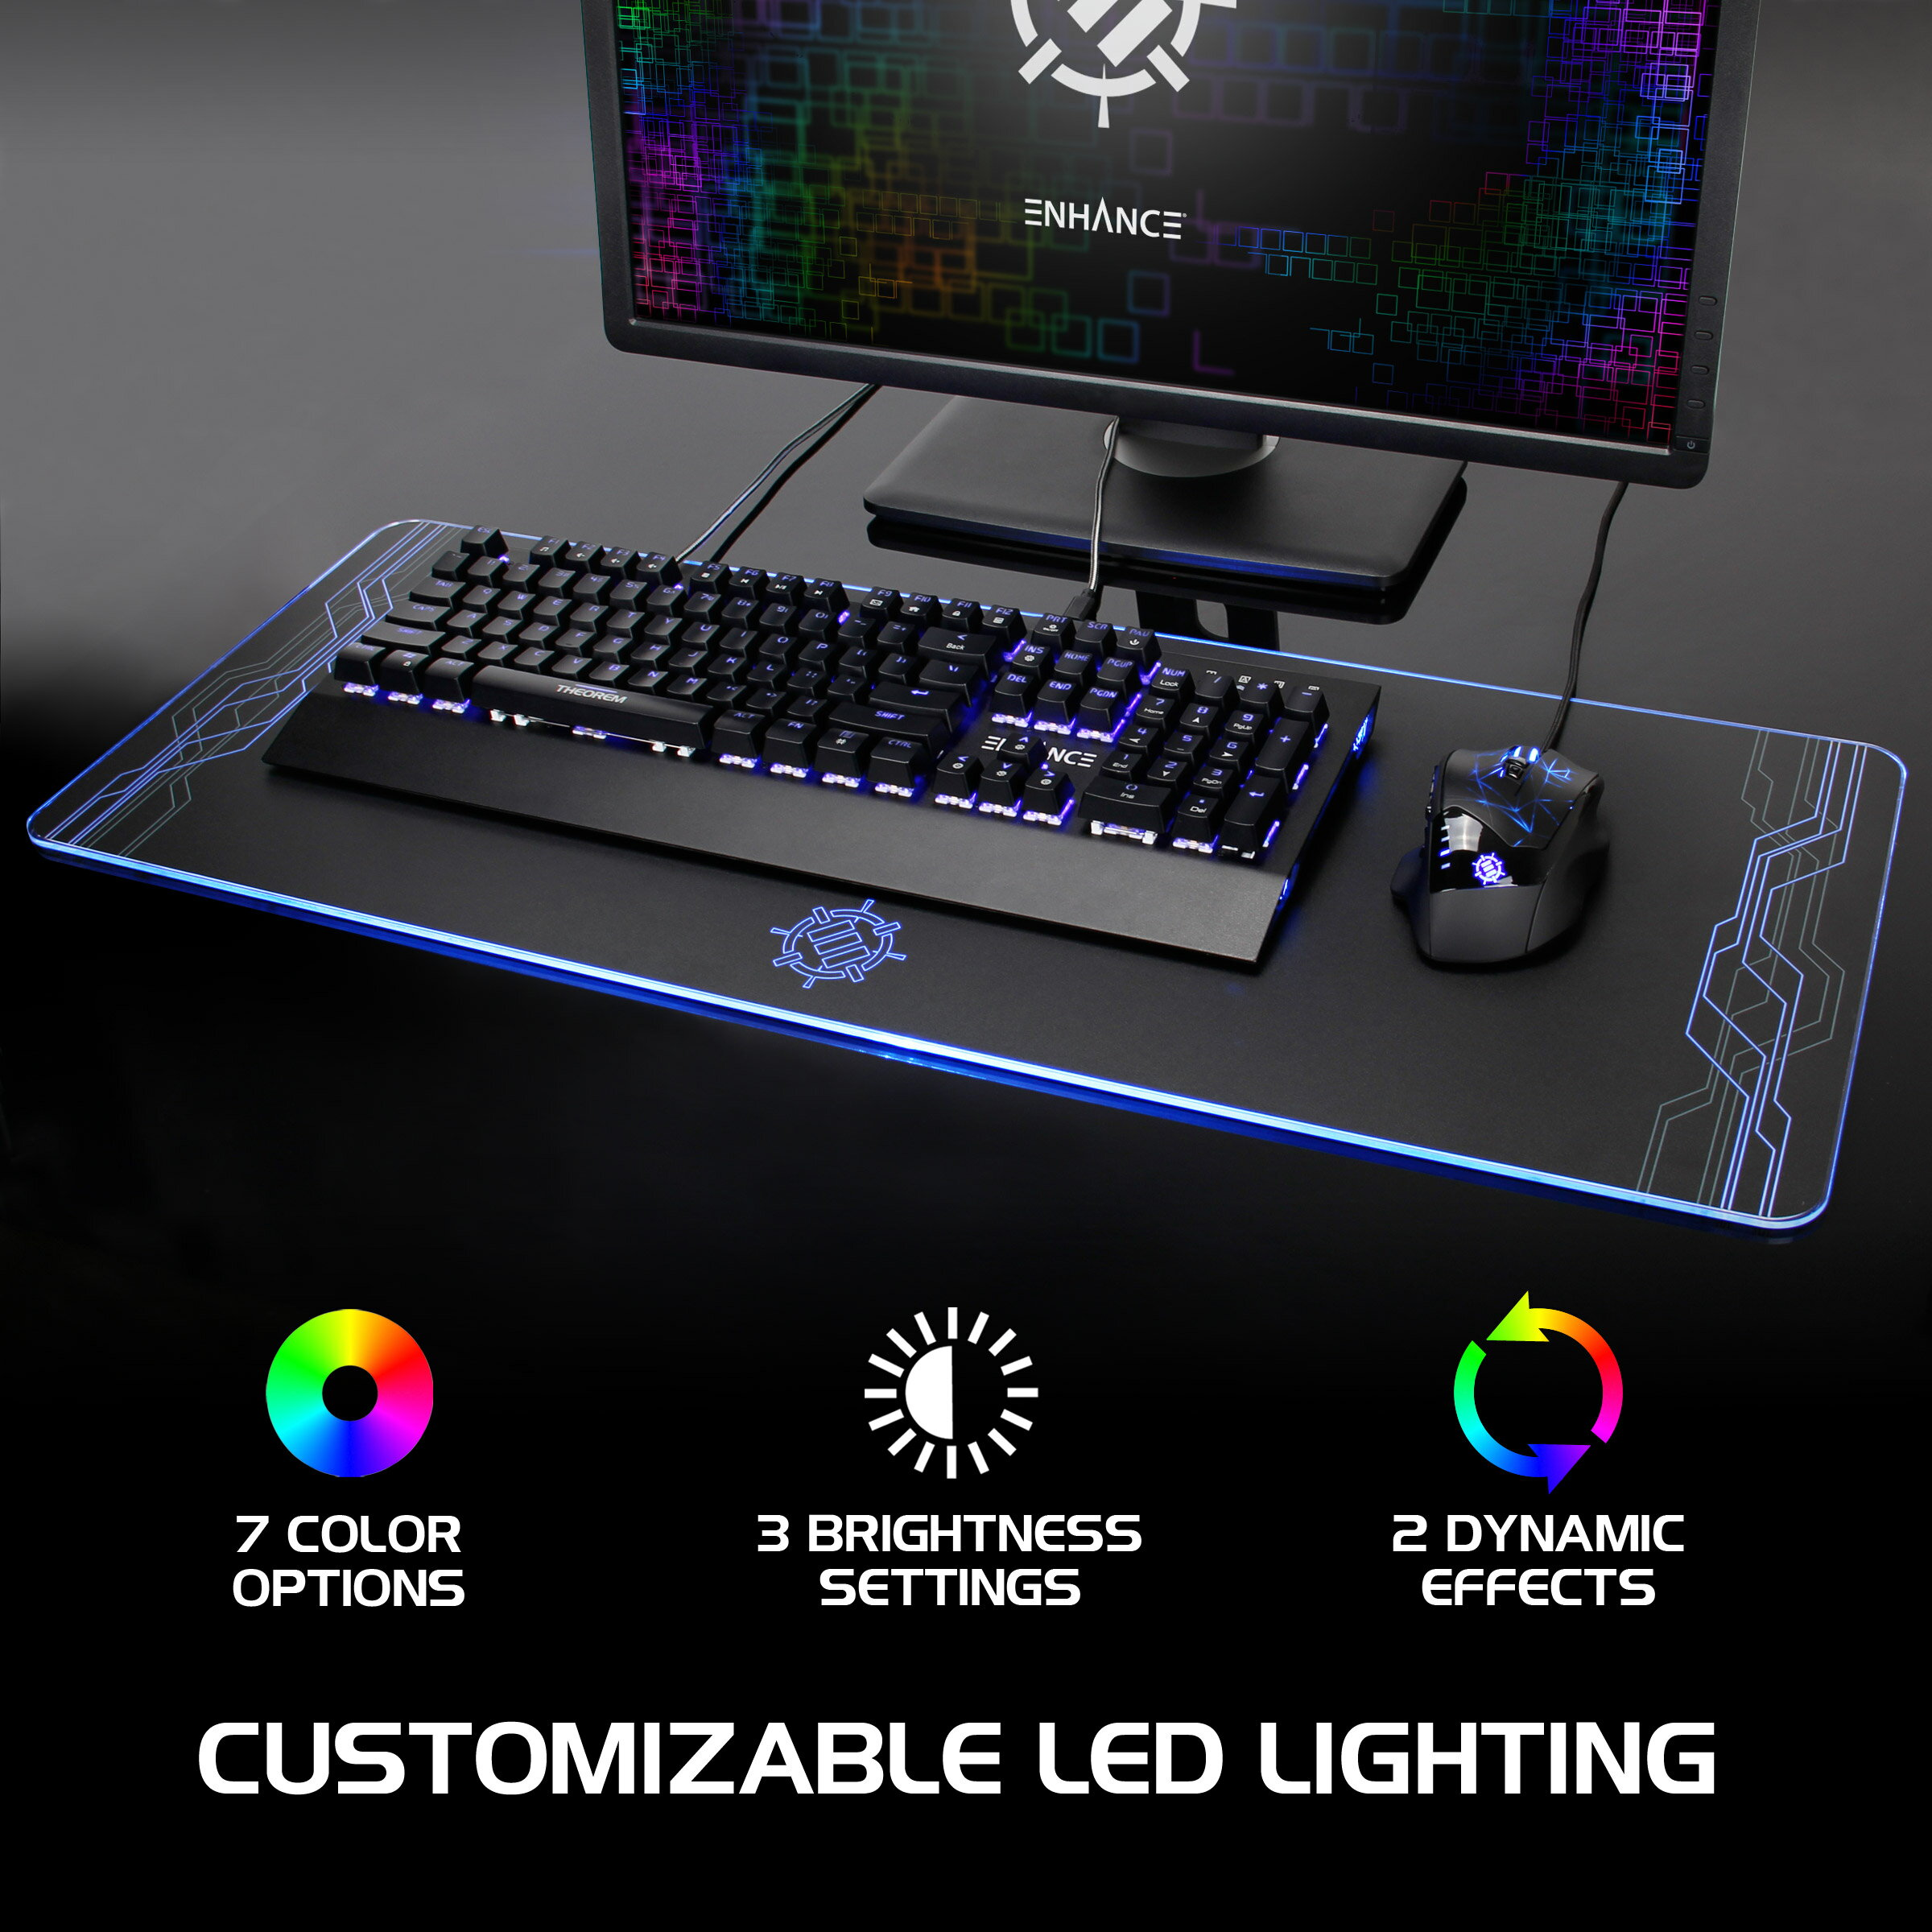 5da8ceeed19 ENHANCE Extra Large LED Gaming Mouse Pad - Hard XXL Desk Mat with 7 Colors &